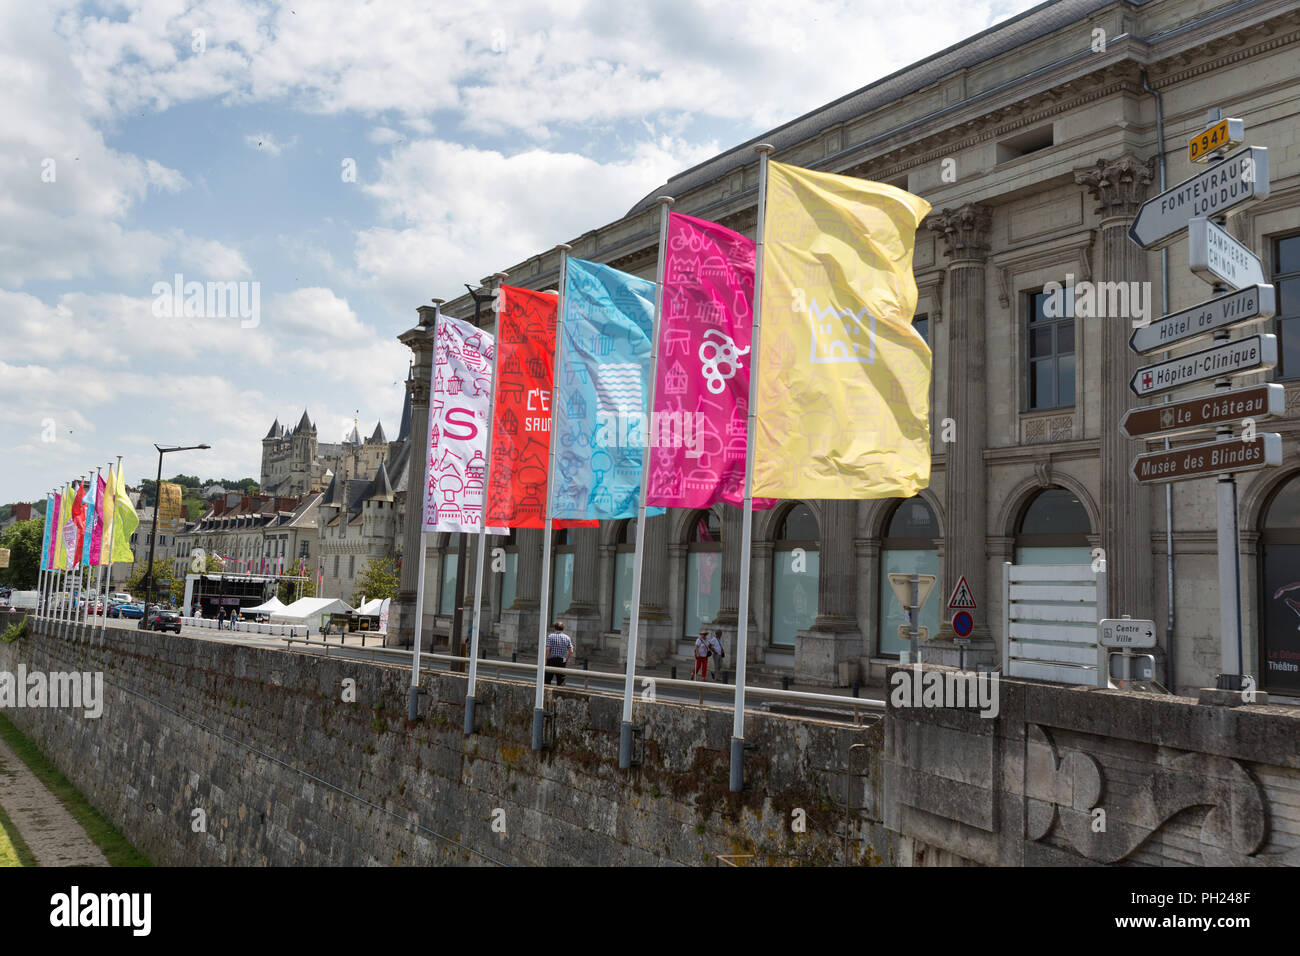 Town of Saumur, France. Picturesque view of banners flying outside the Expo Artistes Saumurois (The Dome) at Saumur's Route de Saumur. - Stock Image